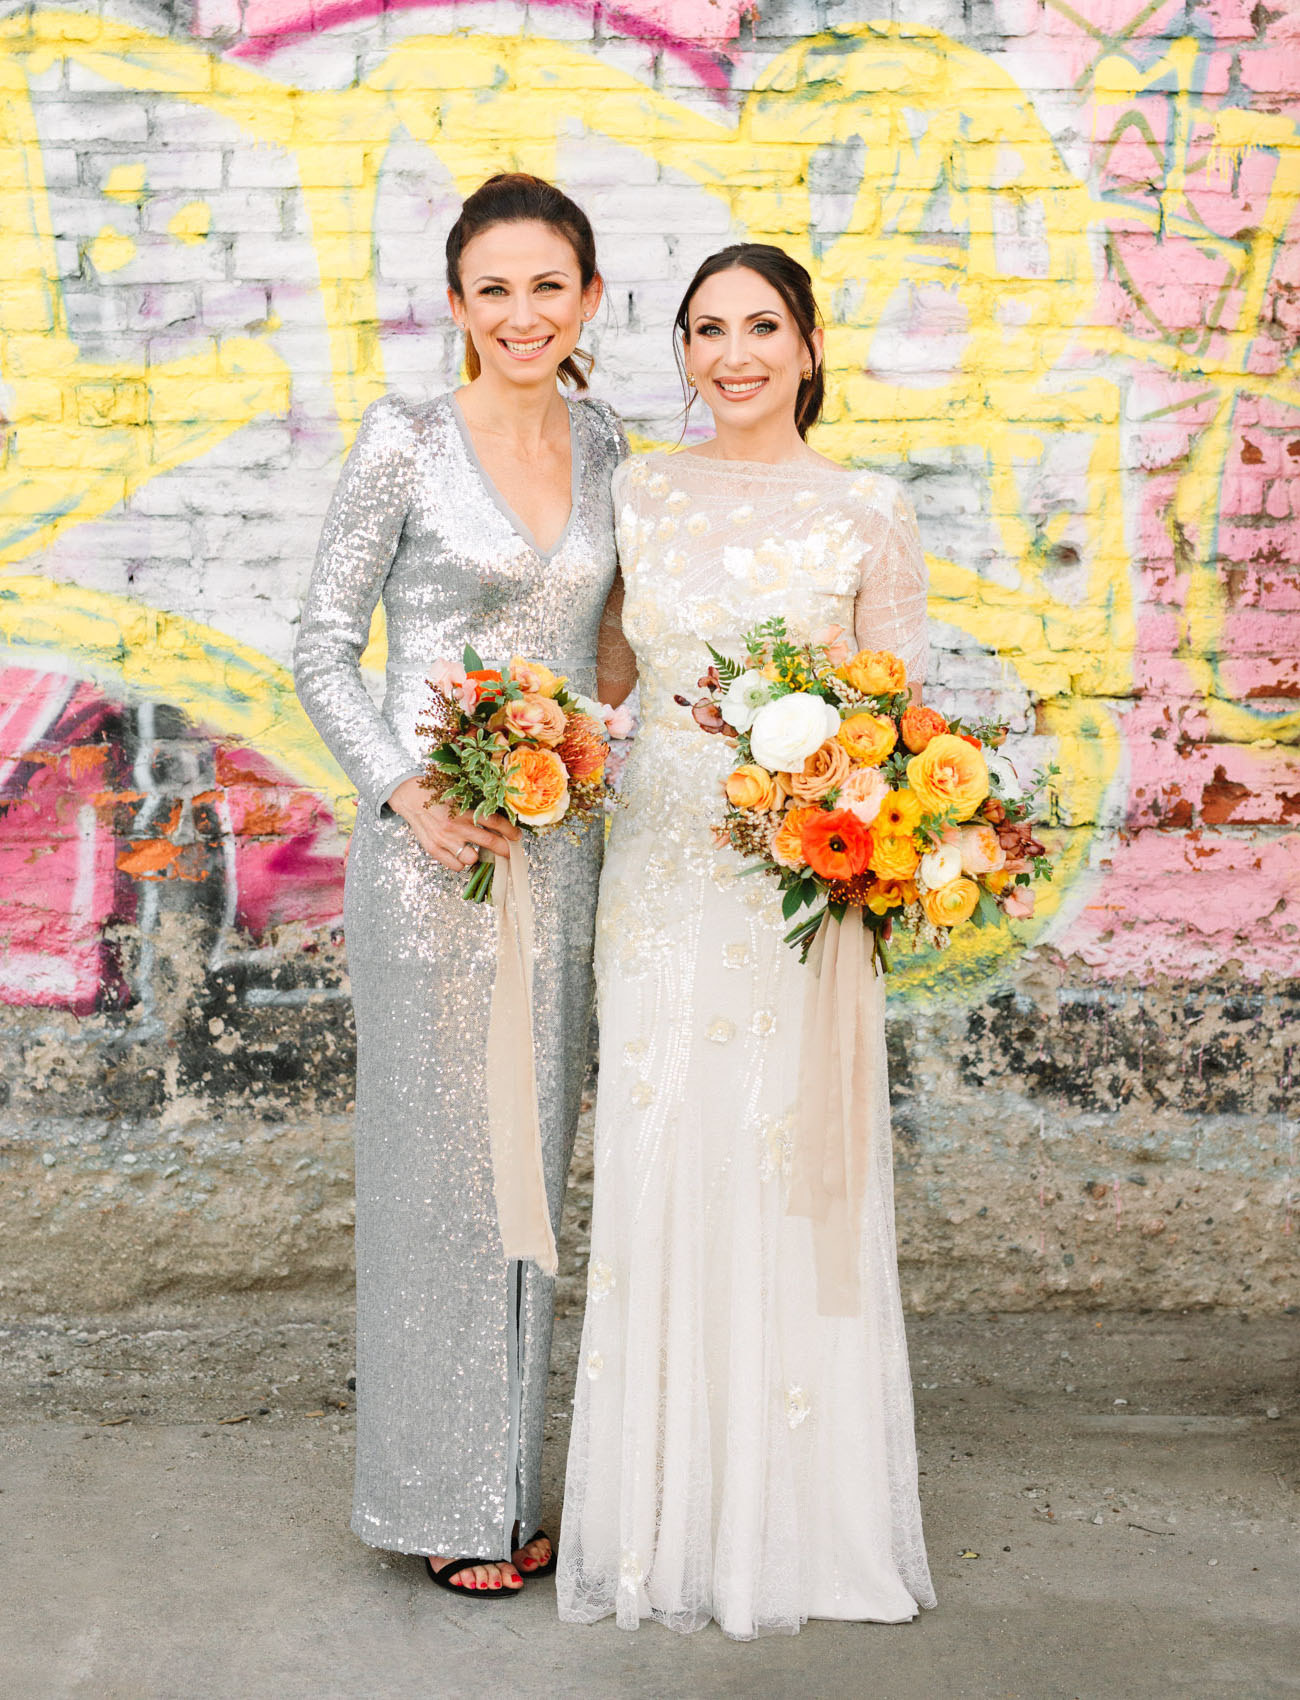 The bride was wearing a white wedding dress with embellishments and gold lace appliques, the bridesmaid was wearing a silver sequin maxi dress